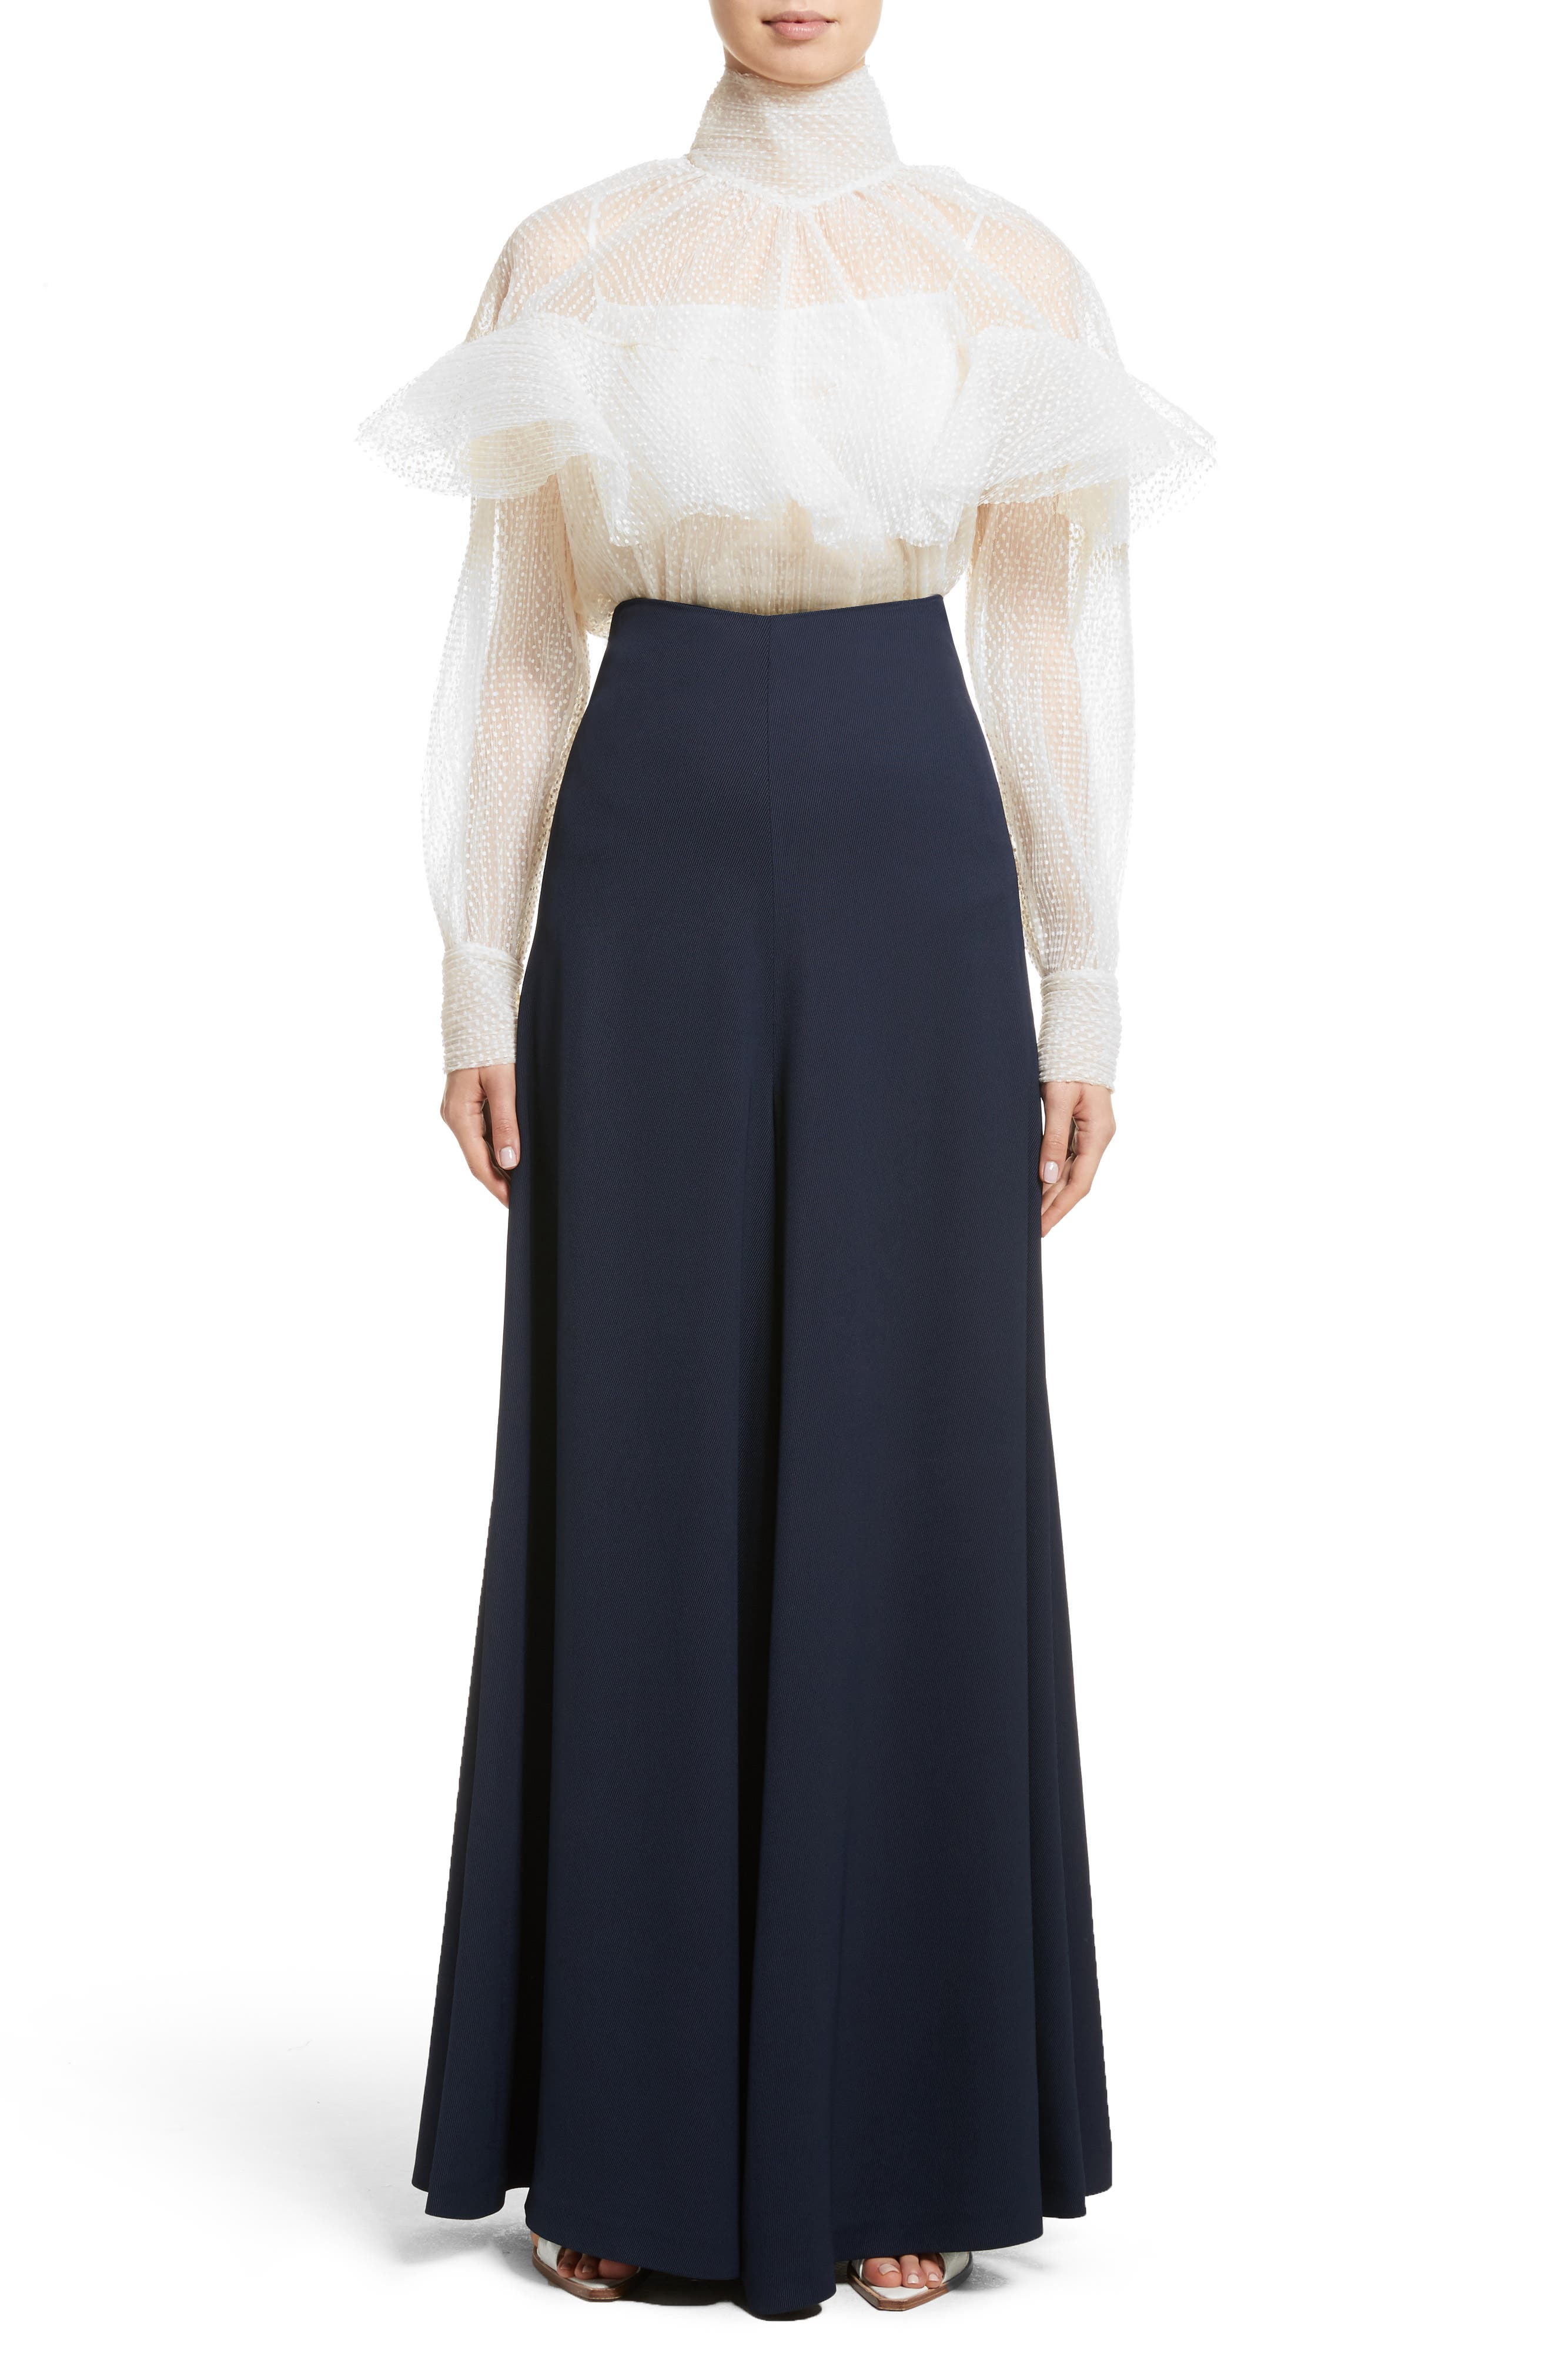 A.W.A.K.E Frill Double Layered Tulle Top,                             Alternate thumbnail 7, color,                             Cream